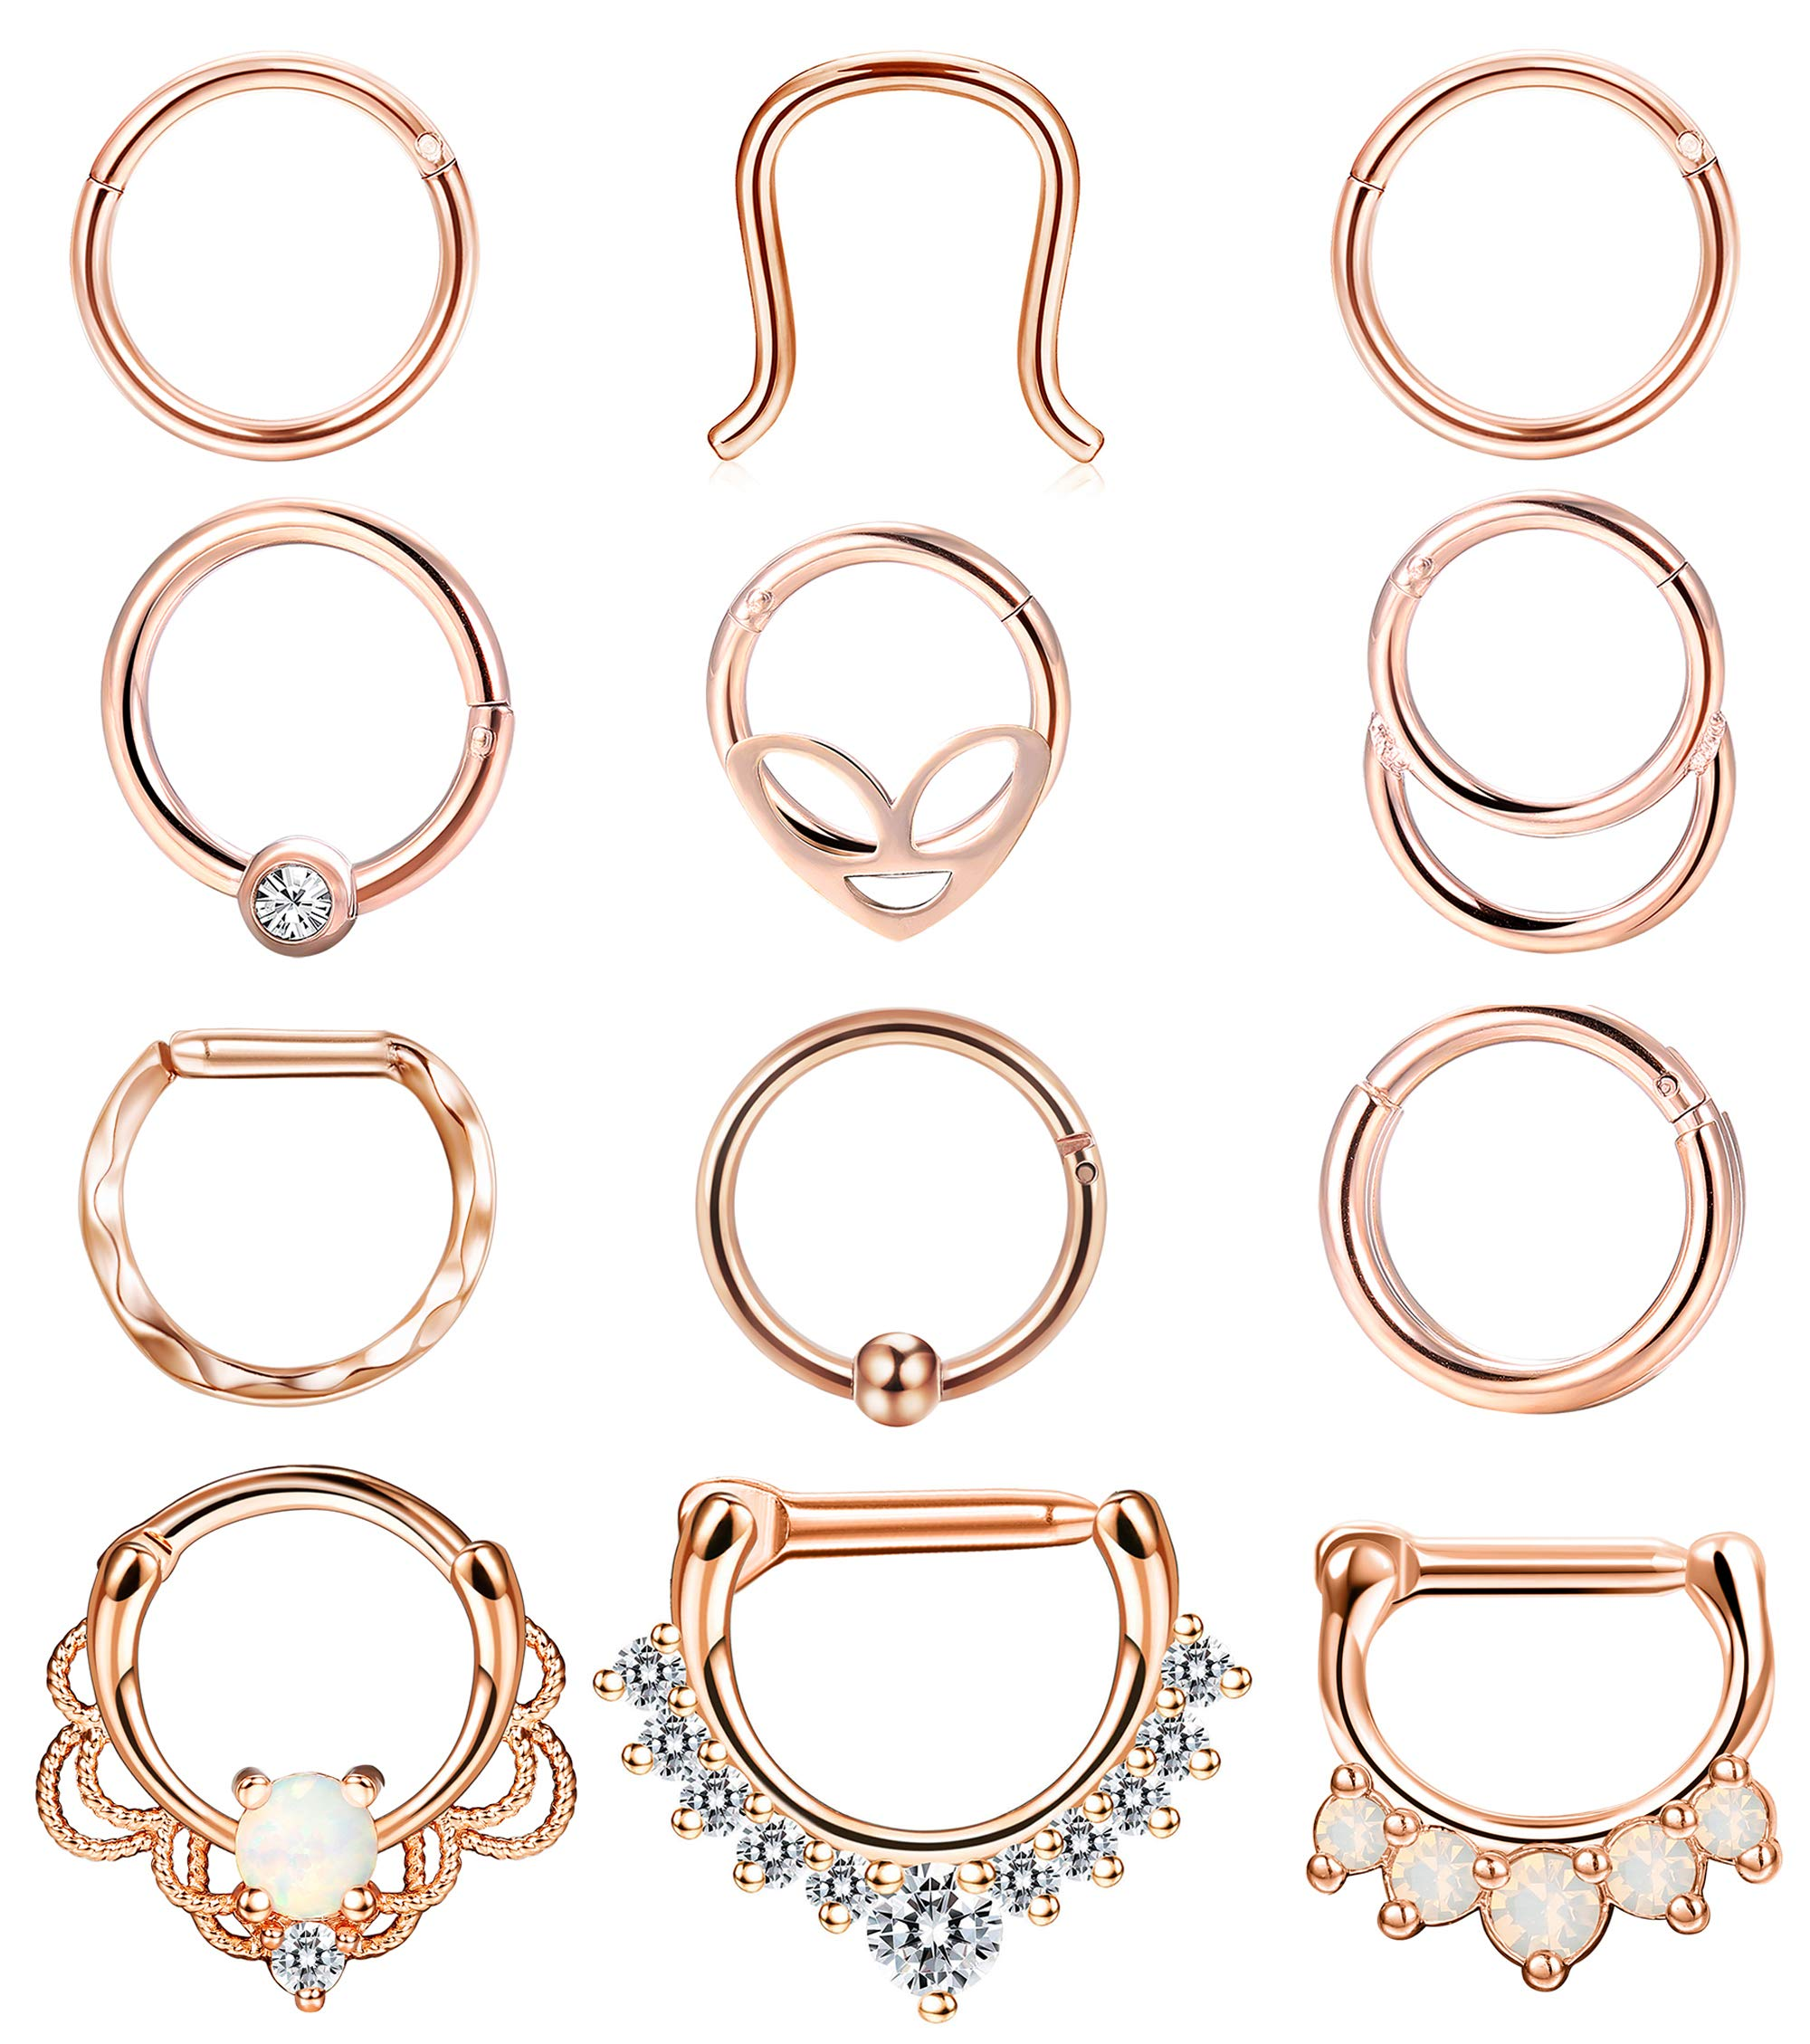 ORAZIO Septum Rings Stainless Steel 16G Hinged Segment Clicker Rings Cartilage Helix Daith Septum Piercing Jewelry by ORAZIO